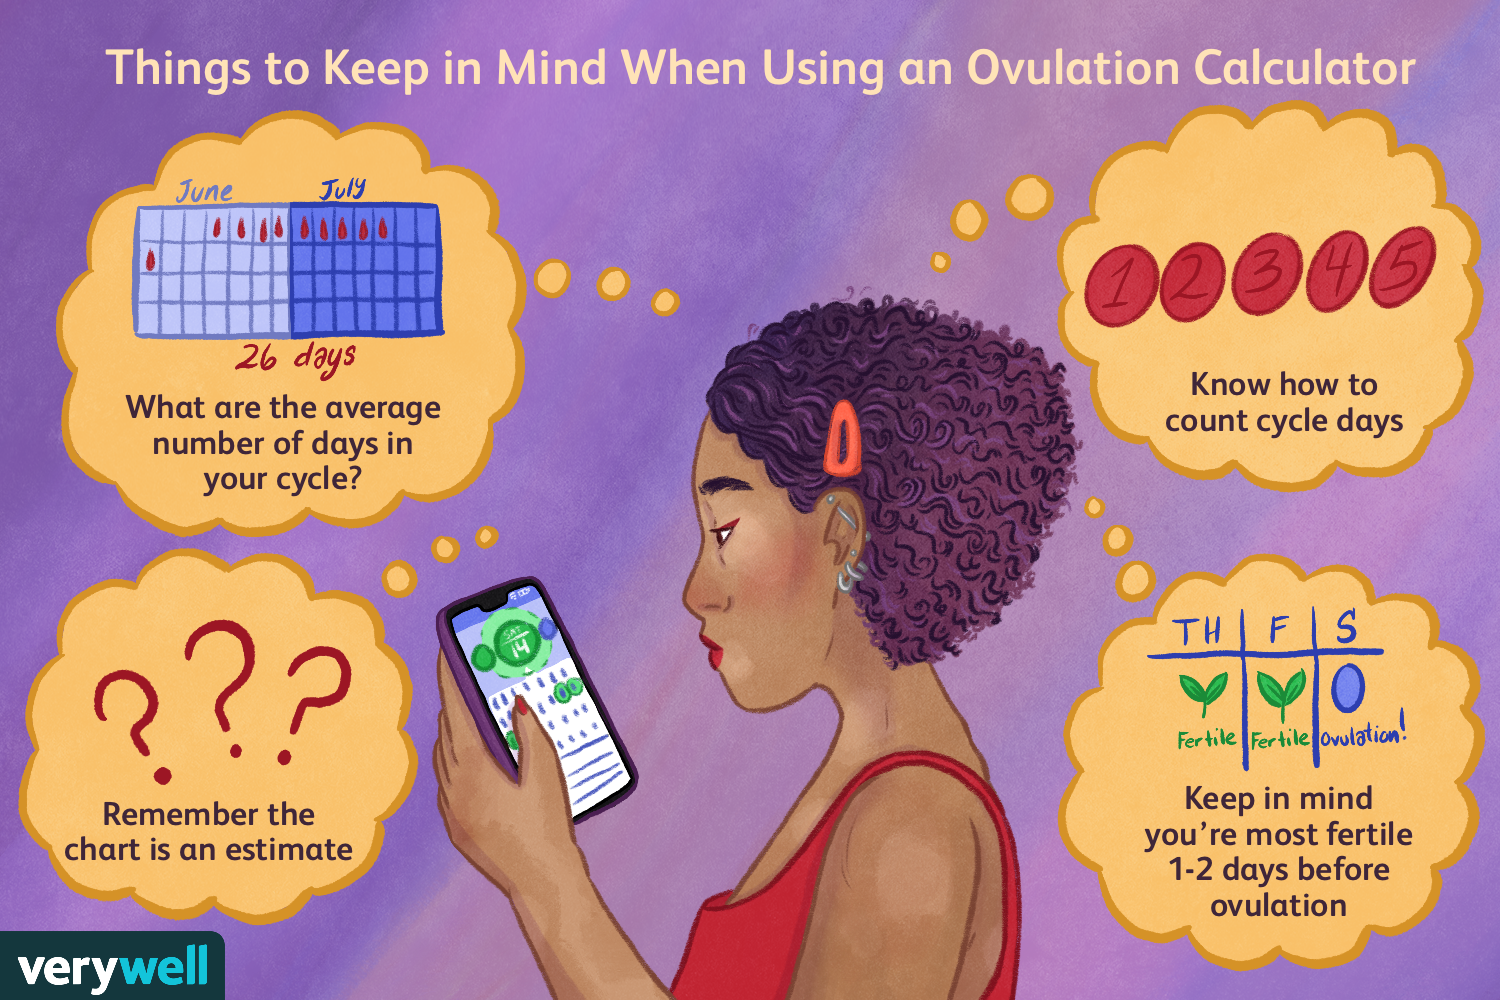 Things to keep in mind when using an ovulation calculator